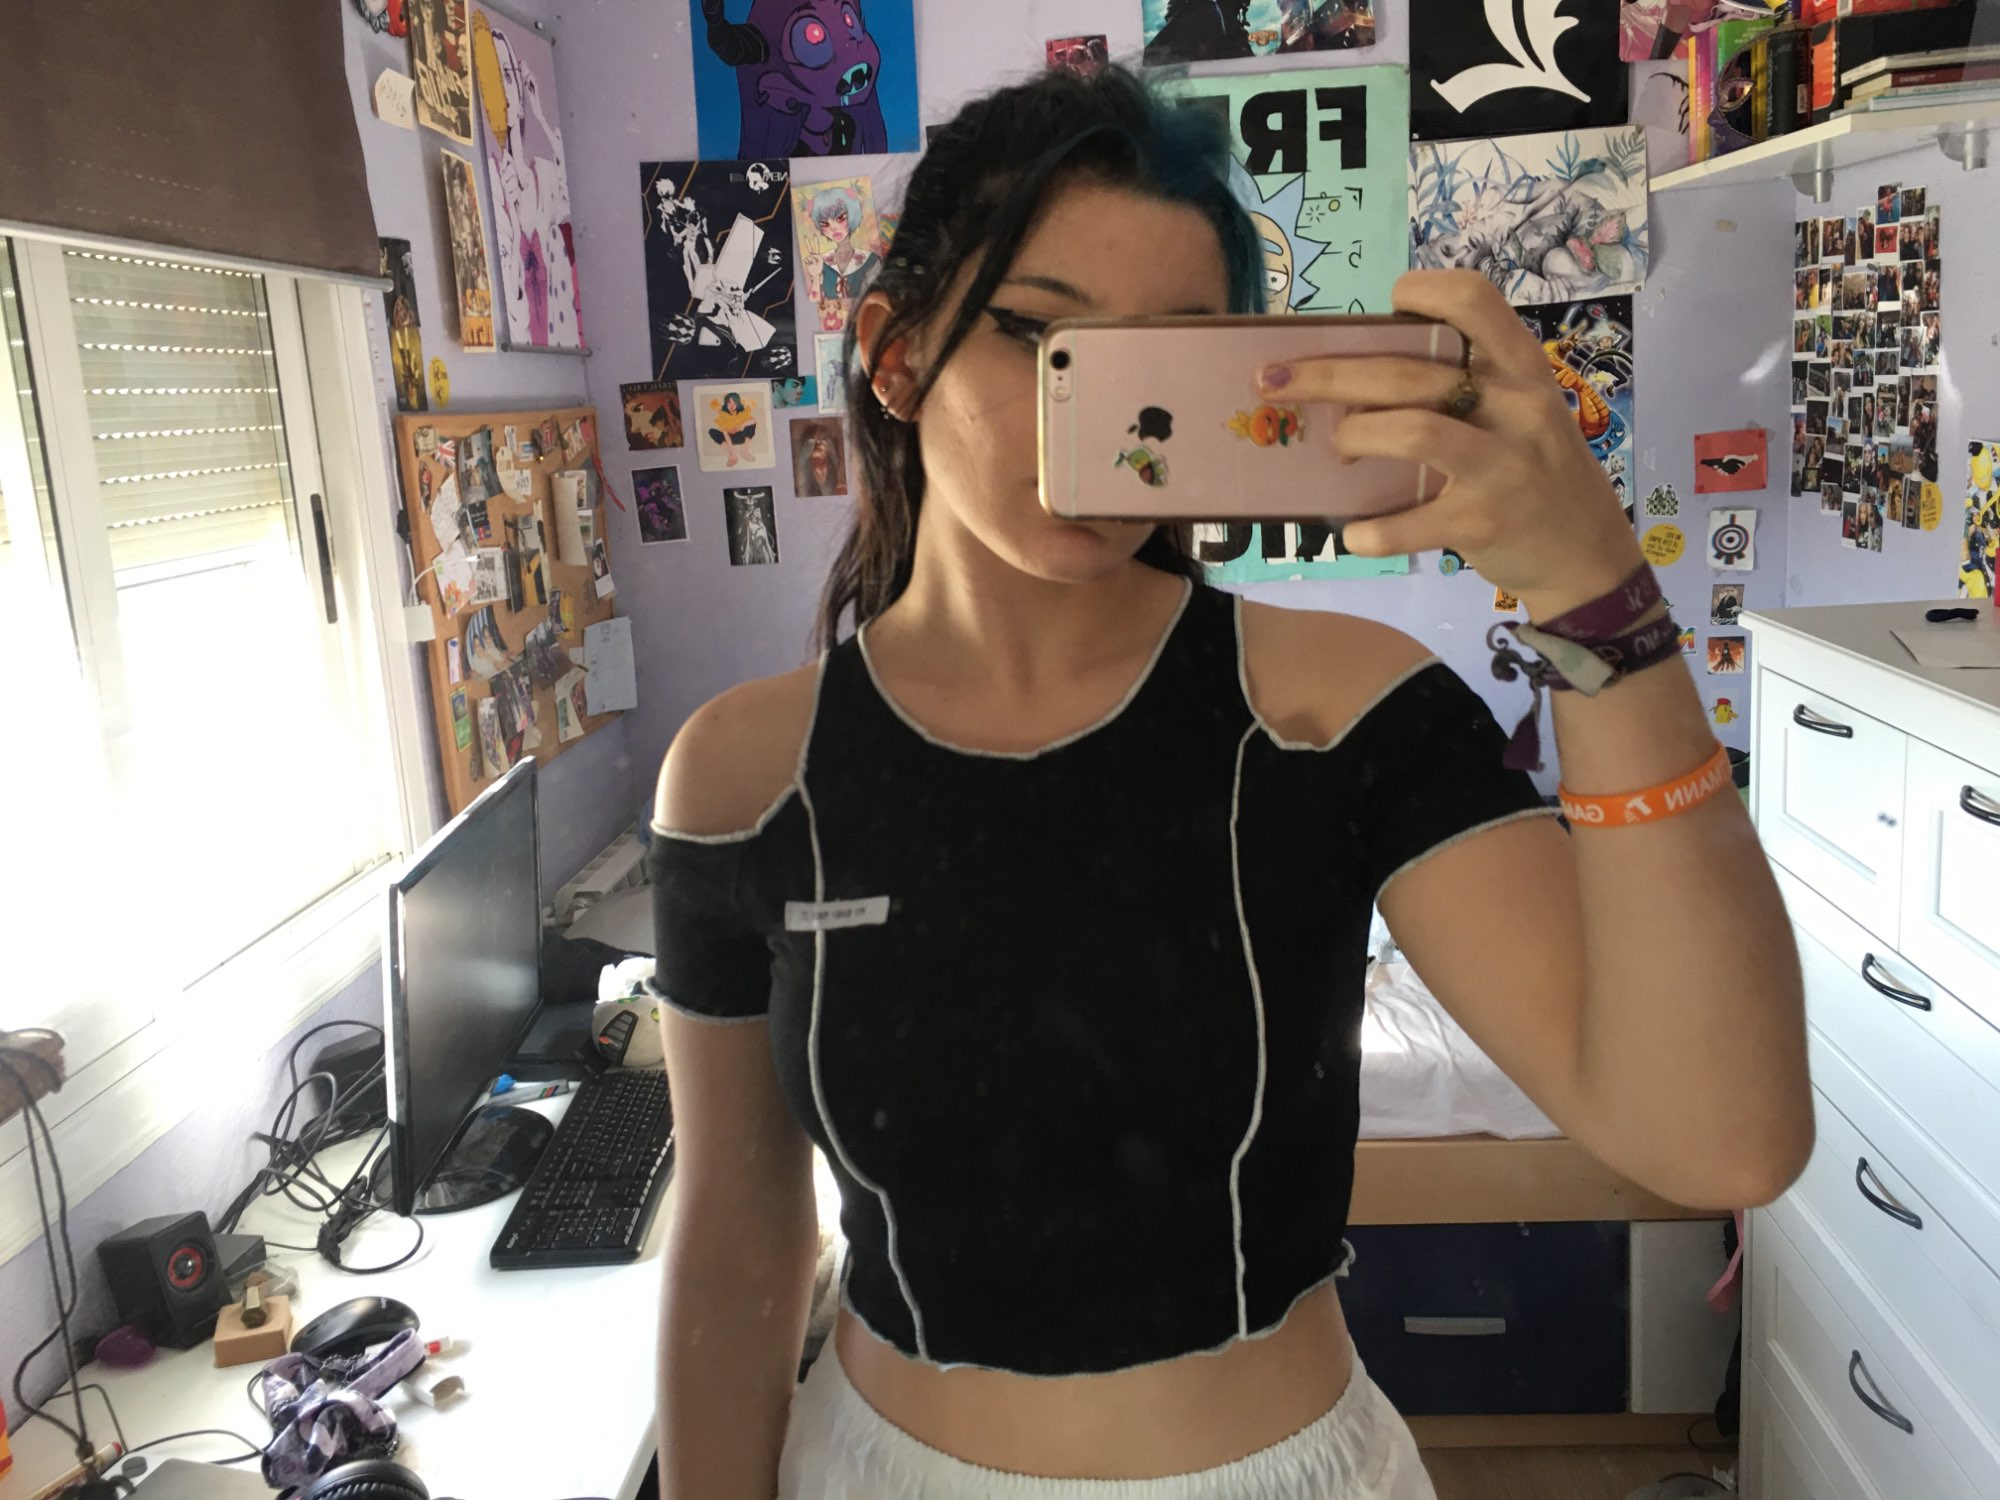 E-girl / Gothic Style Off Shoulder Crop Top photo review